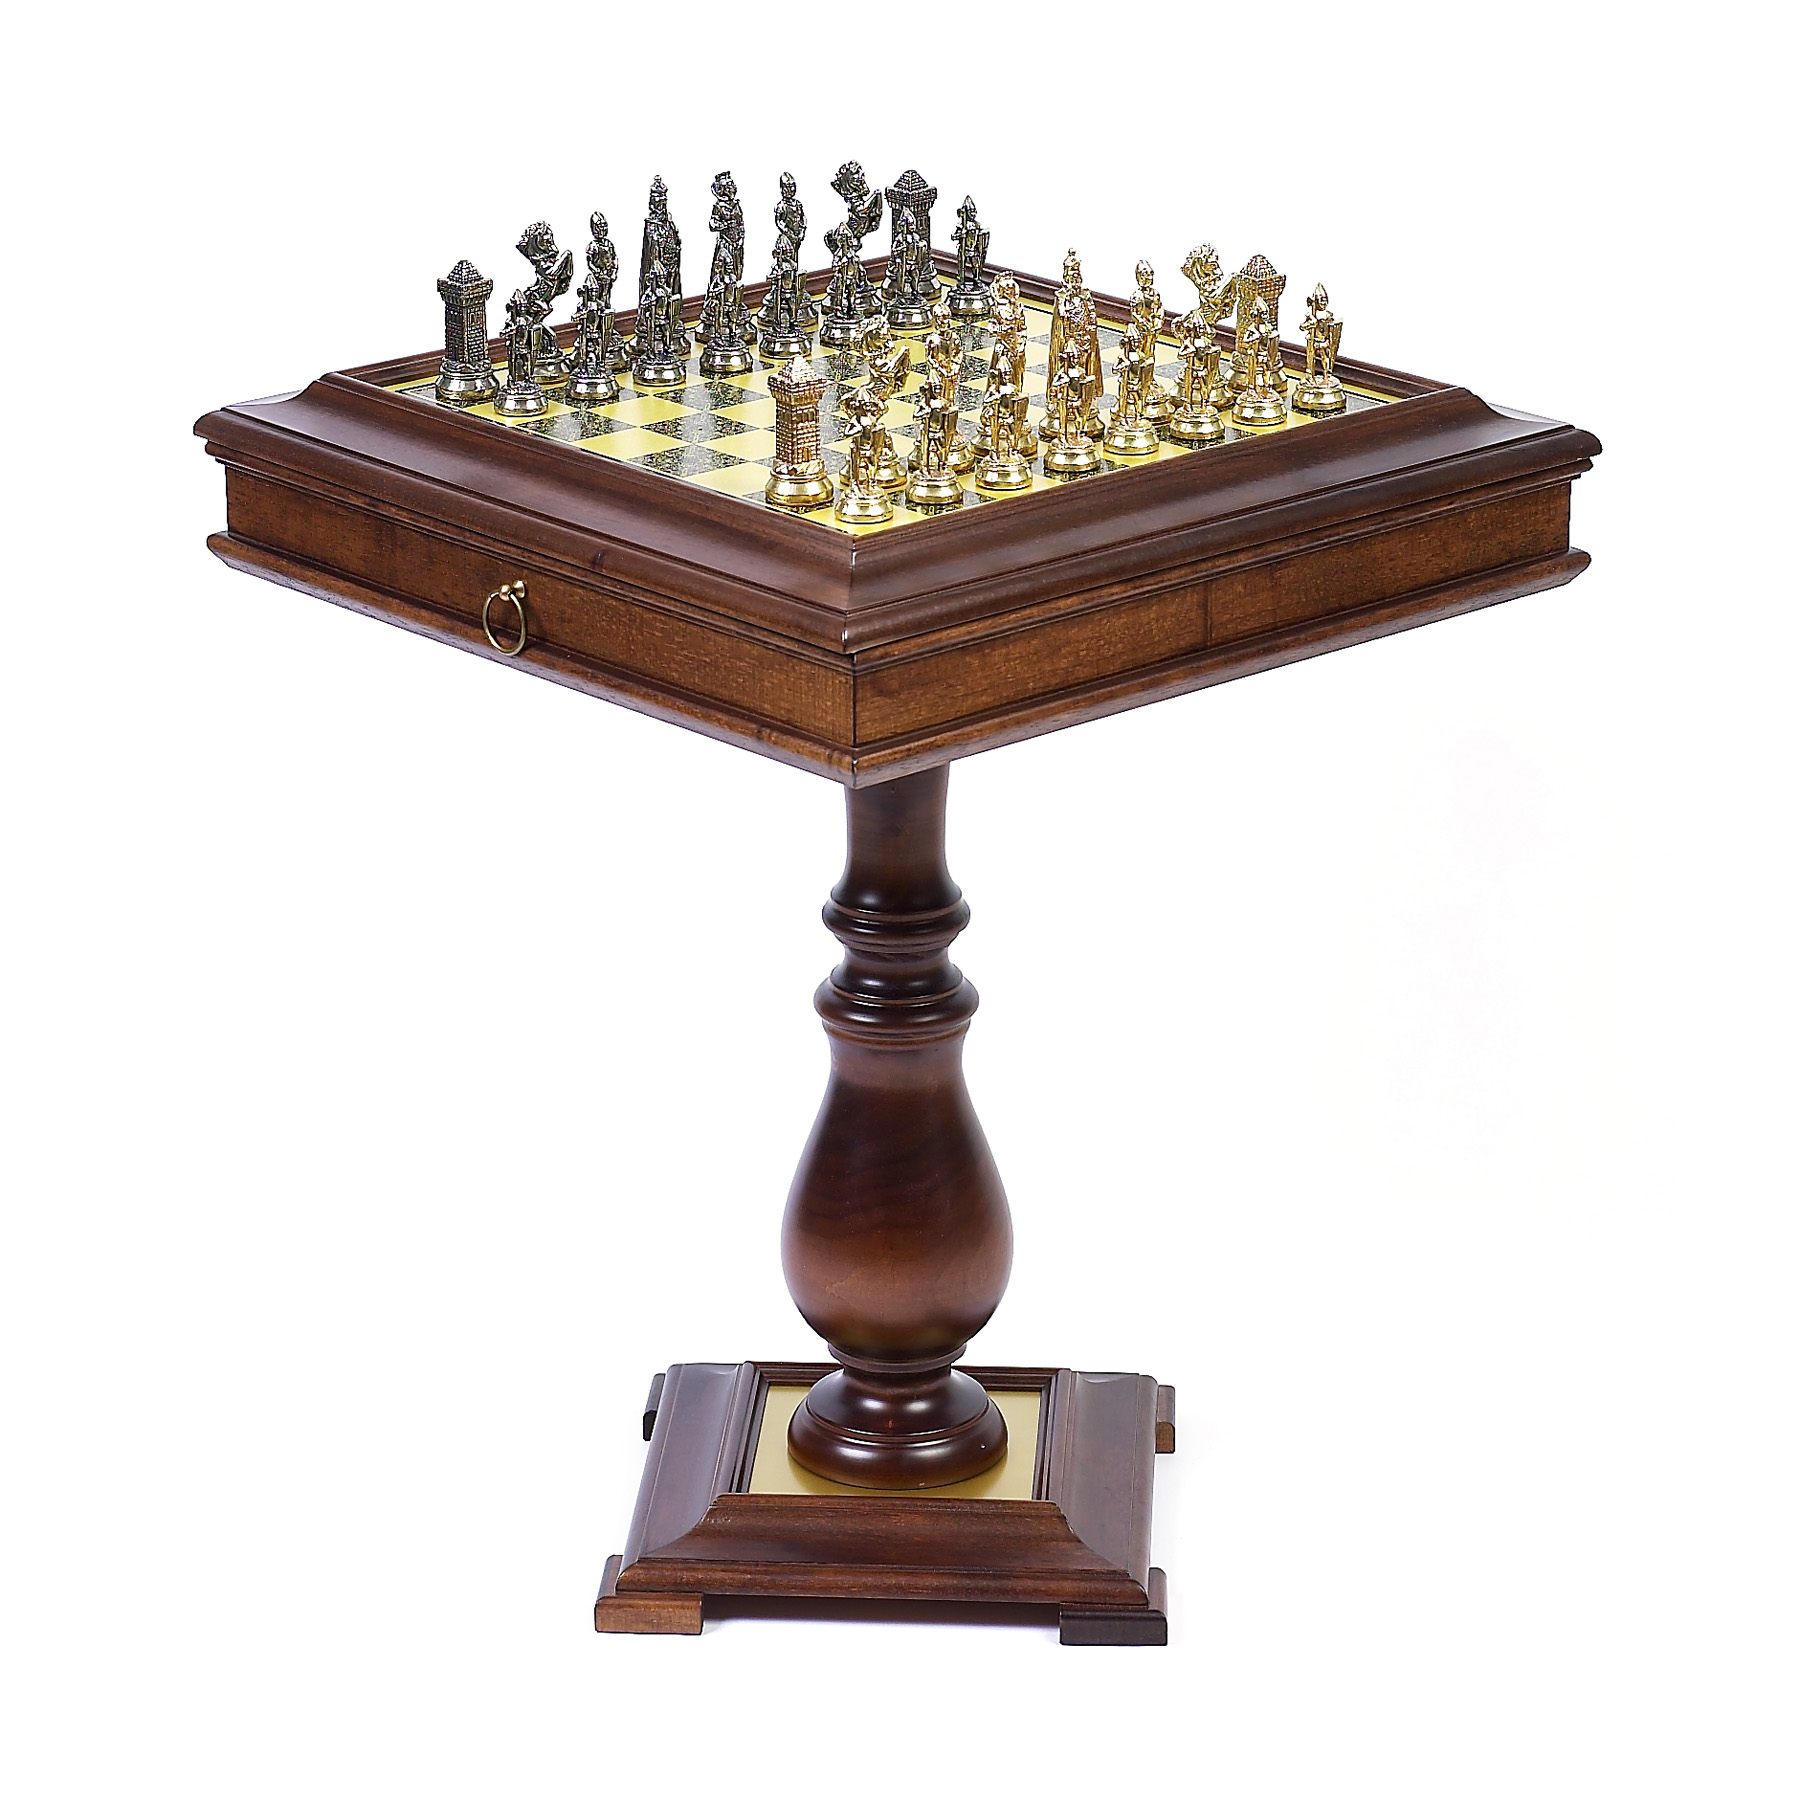 Merveilleux Victorian Metal Chess Set On Wormwood Table